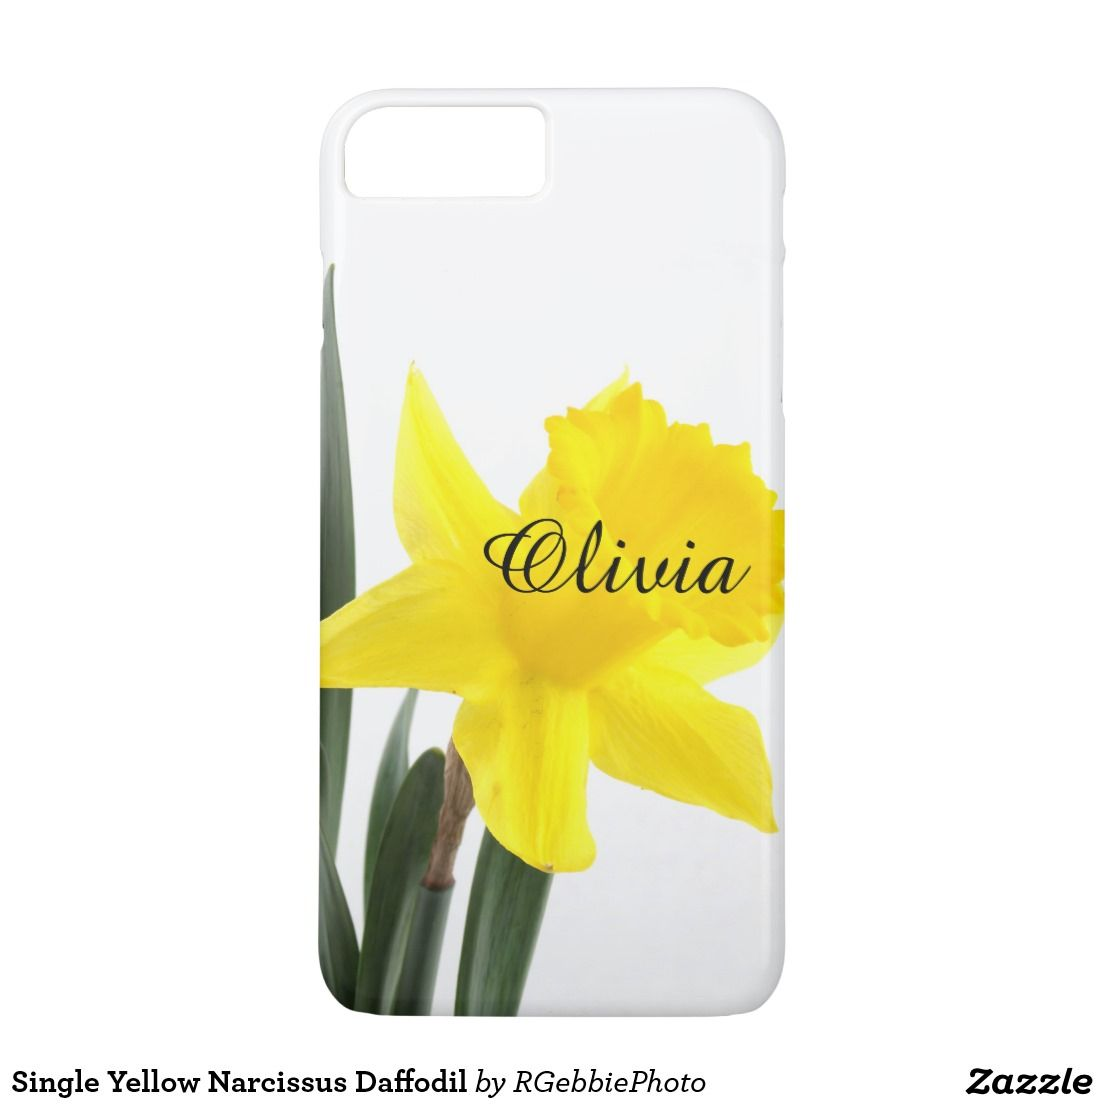 Single yellow narcissus daffodil iphone 7 plus case 5295 single yellow narcissus daffodil iphone 7 plus case 5295 single yellow narcissus daffodil iphone buycottarizona